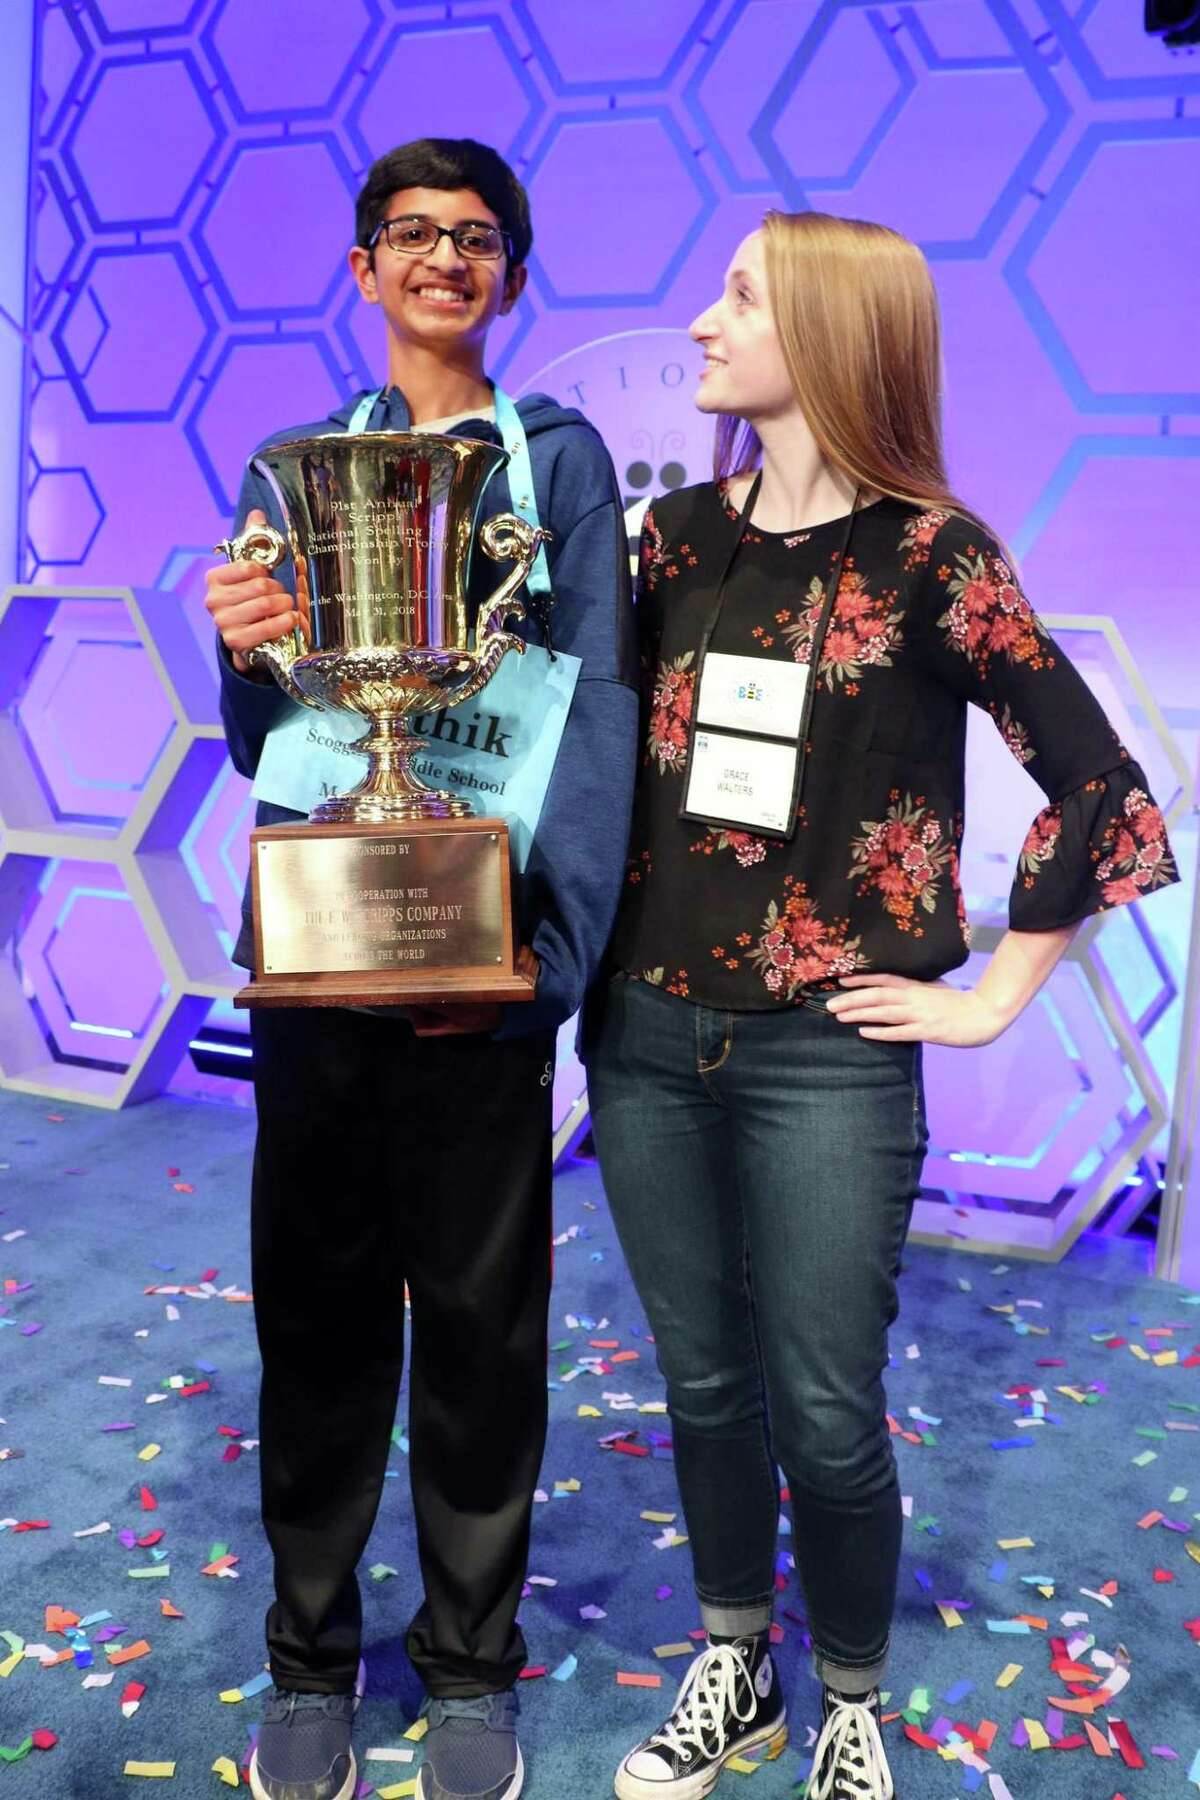 Grace Walters, 16, a Covenant Christian School student, is pictured with Karthik Nemmani, 14, the 2018 Scripps National Spelling Bee winner on May 31 in Washington DC. Walters has coached Nemmani since September in preparation for the national competition.